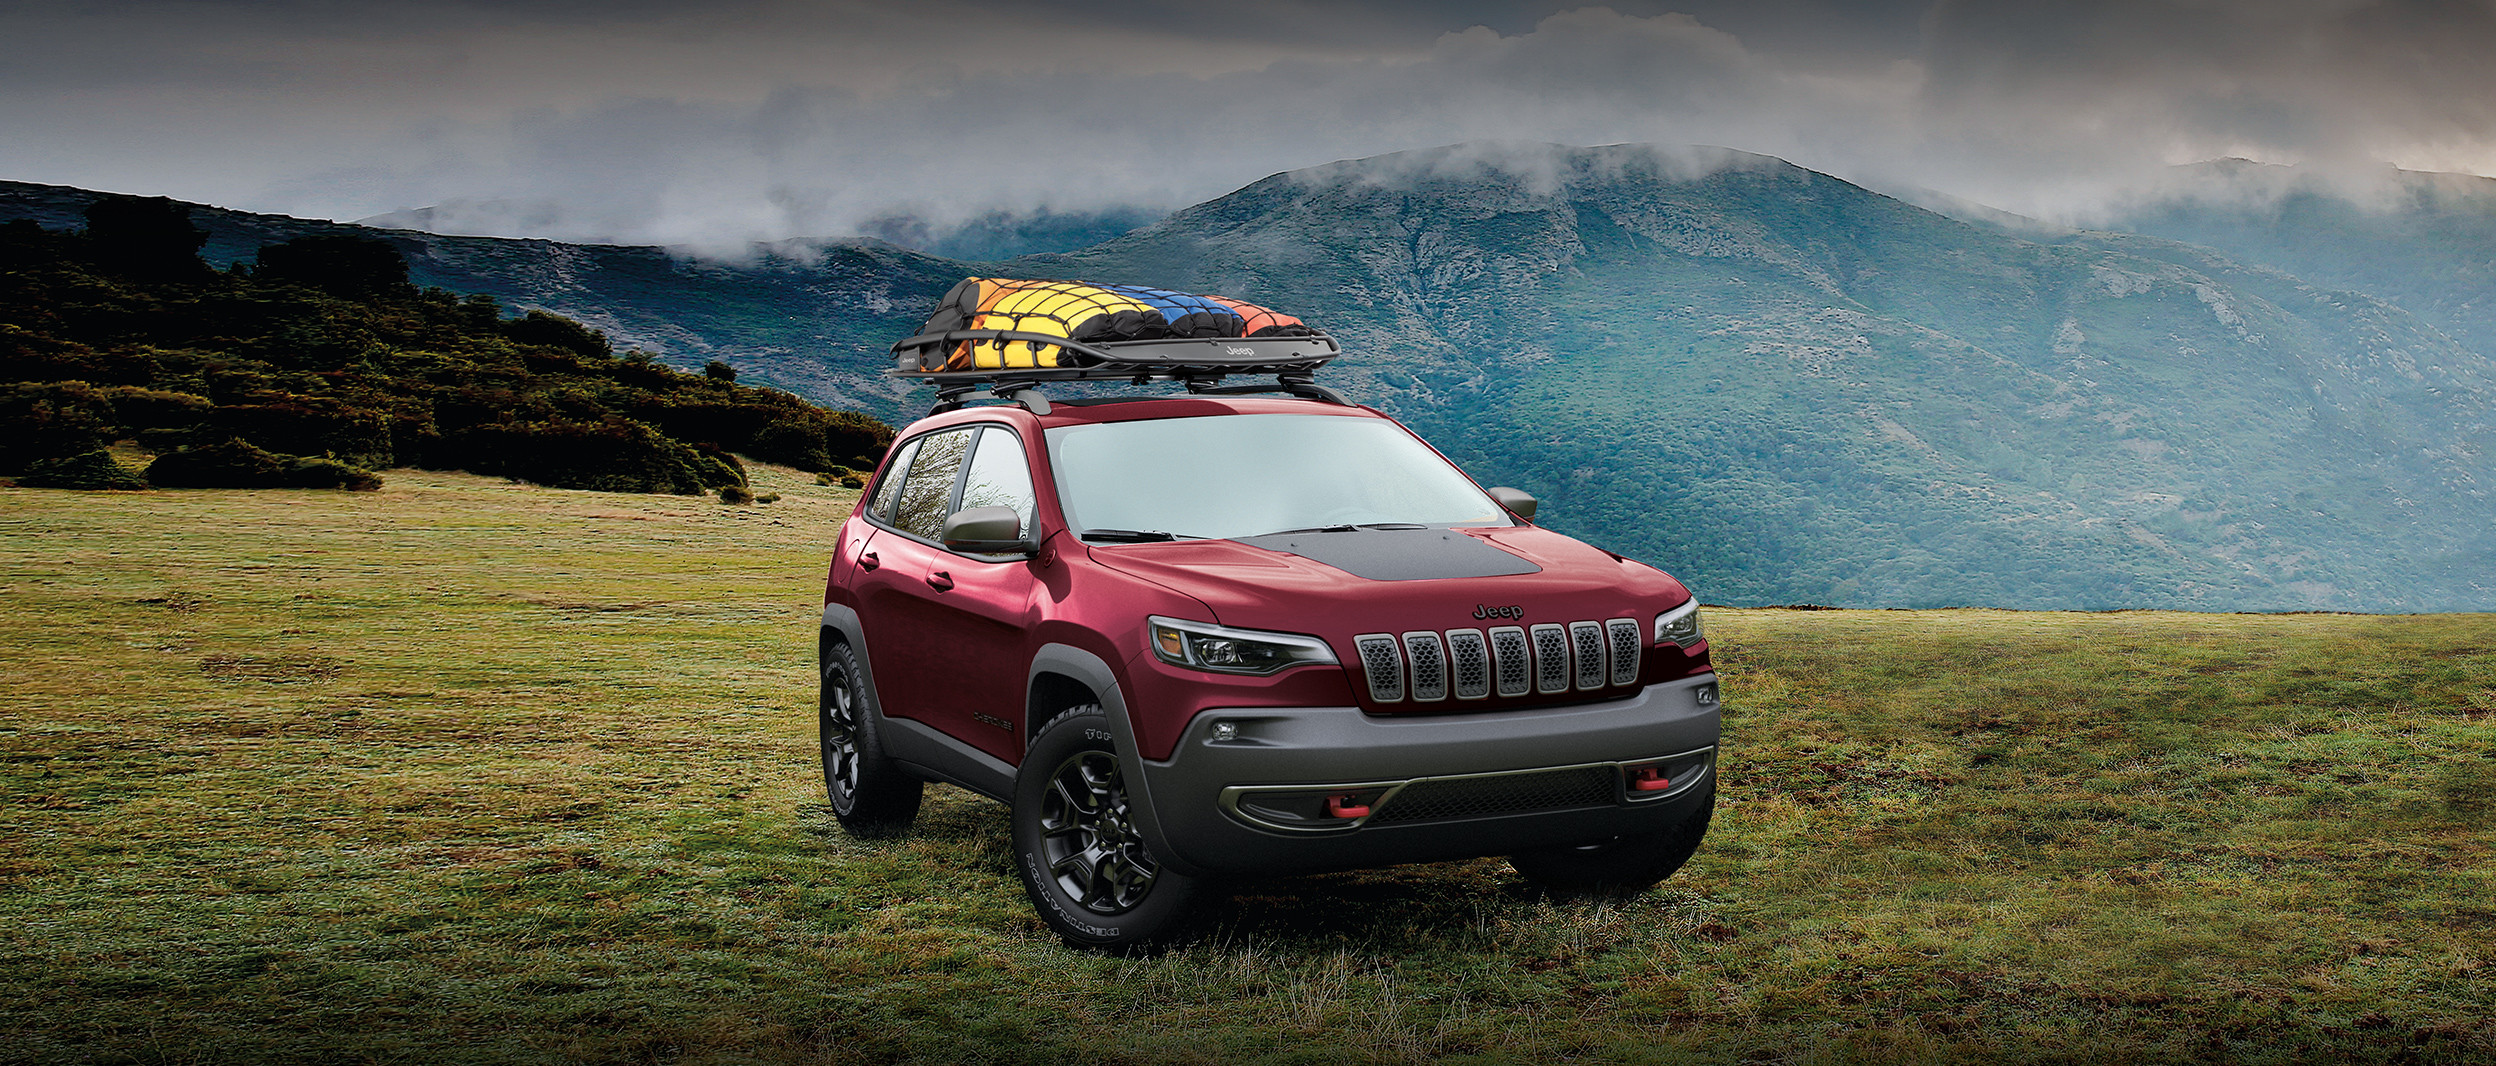 2020 Jeep Cherokee trailhawk parked on a grass field surrounded by mountains